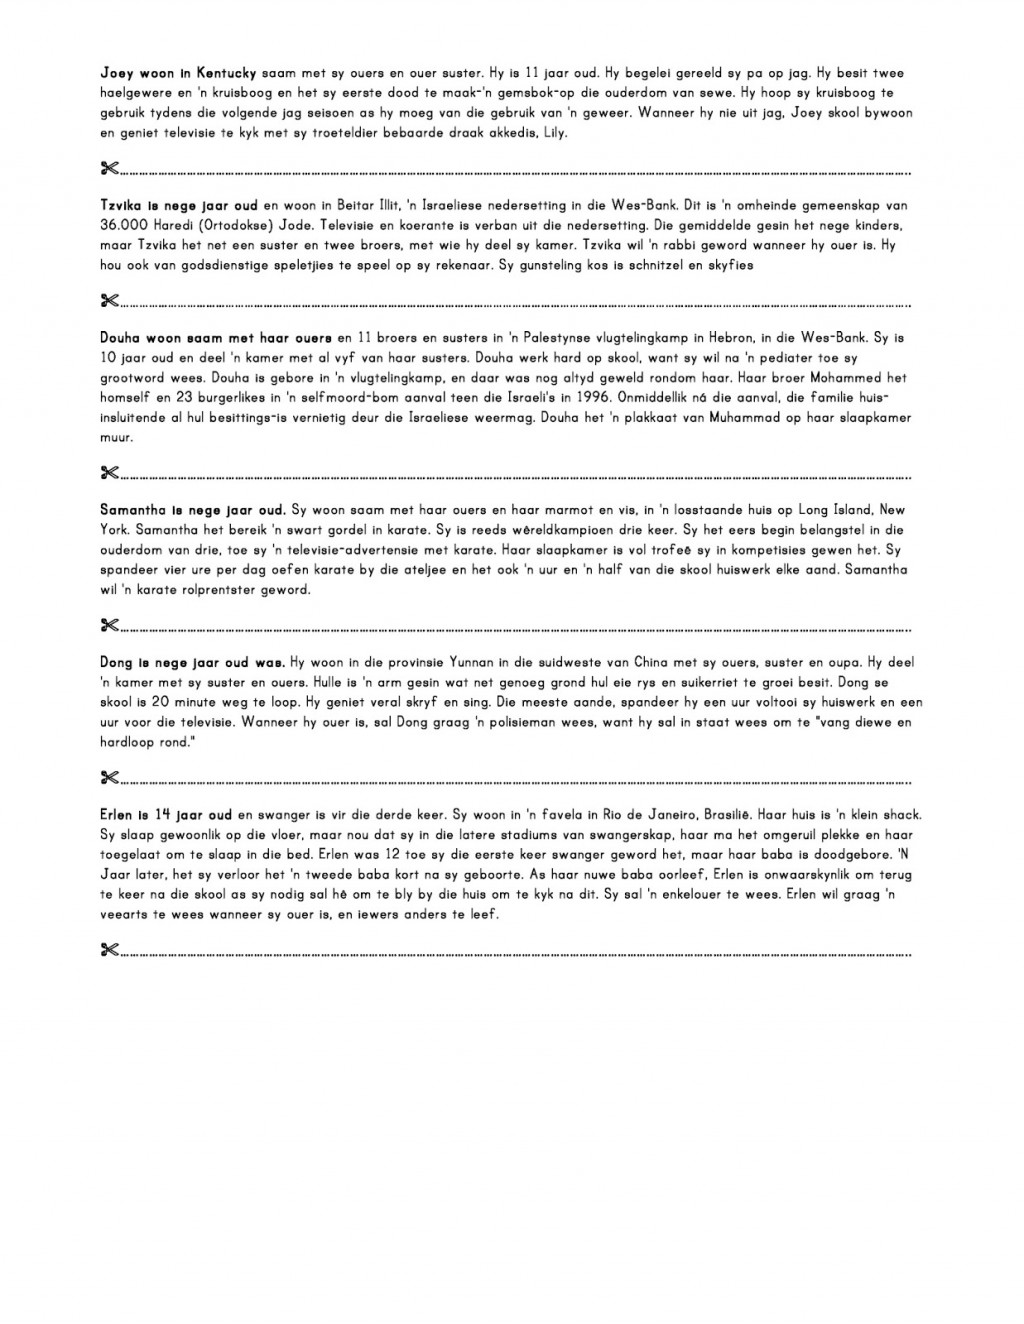 002 My Most Influential Teacher Essay Fascinating Large